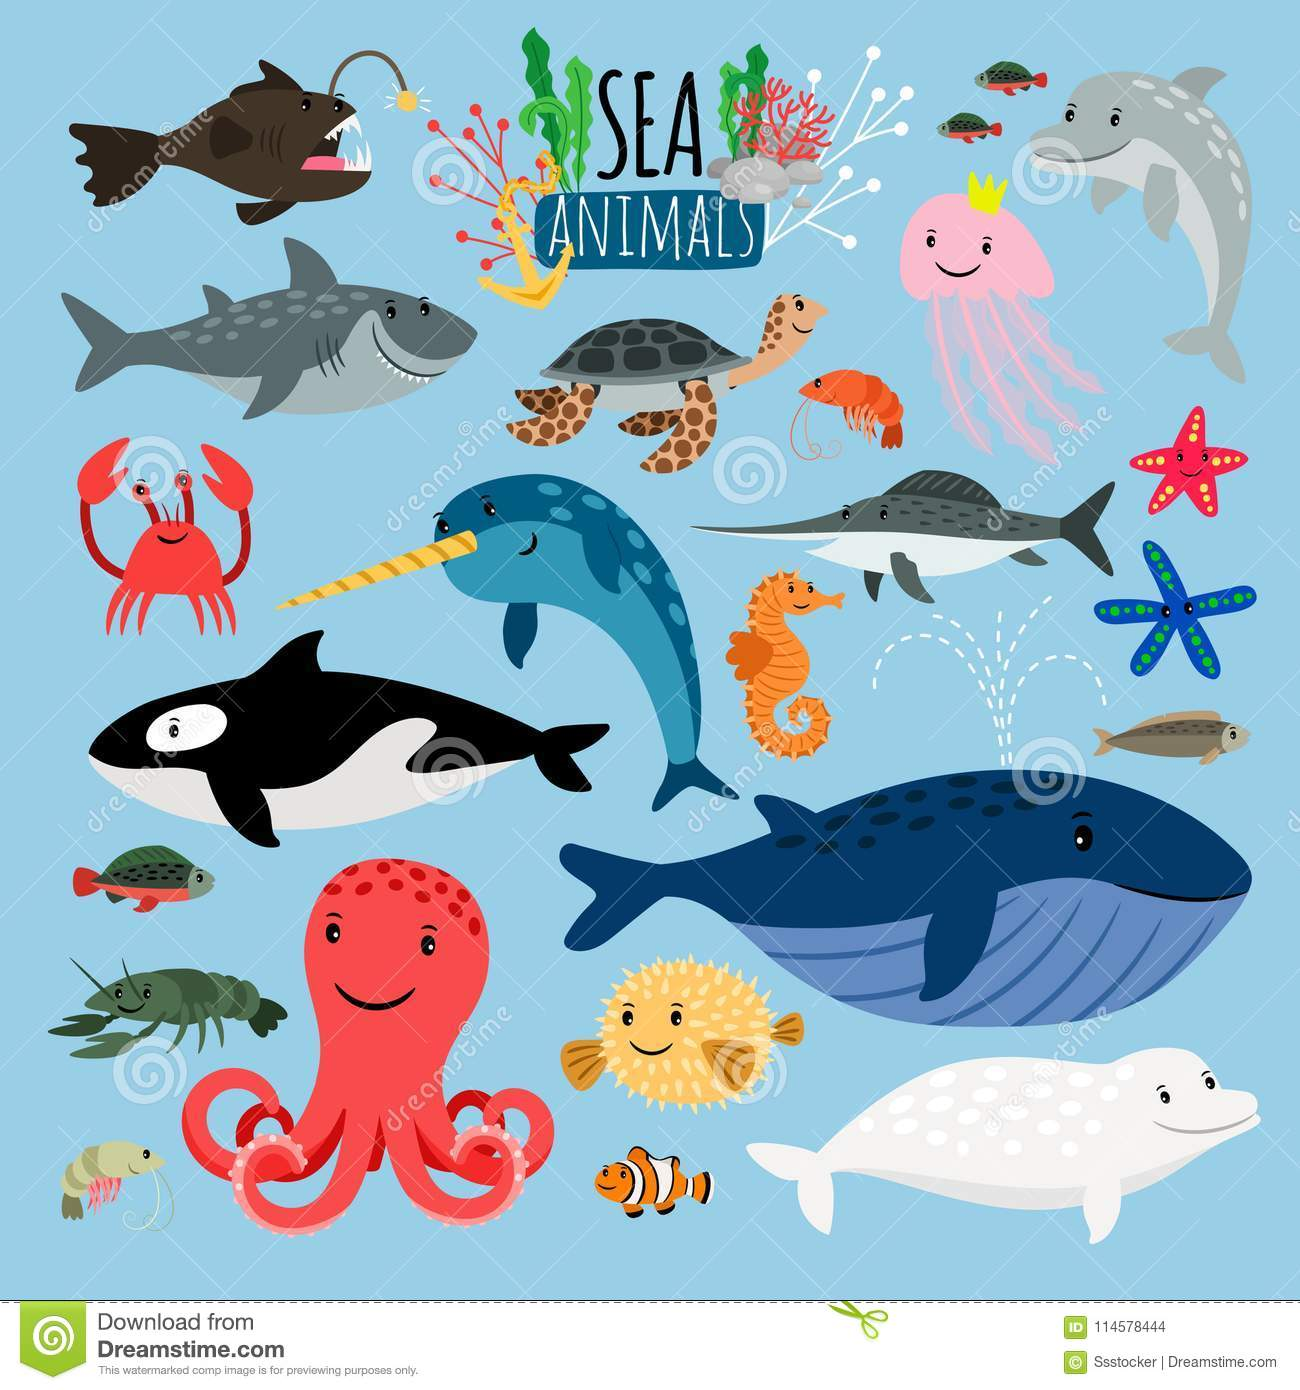 Cute Jellyfish Clipart Starfish Cartoons, Illustrations & Vector Stock Images